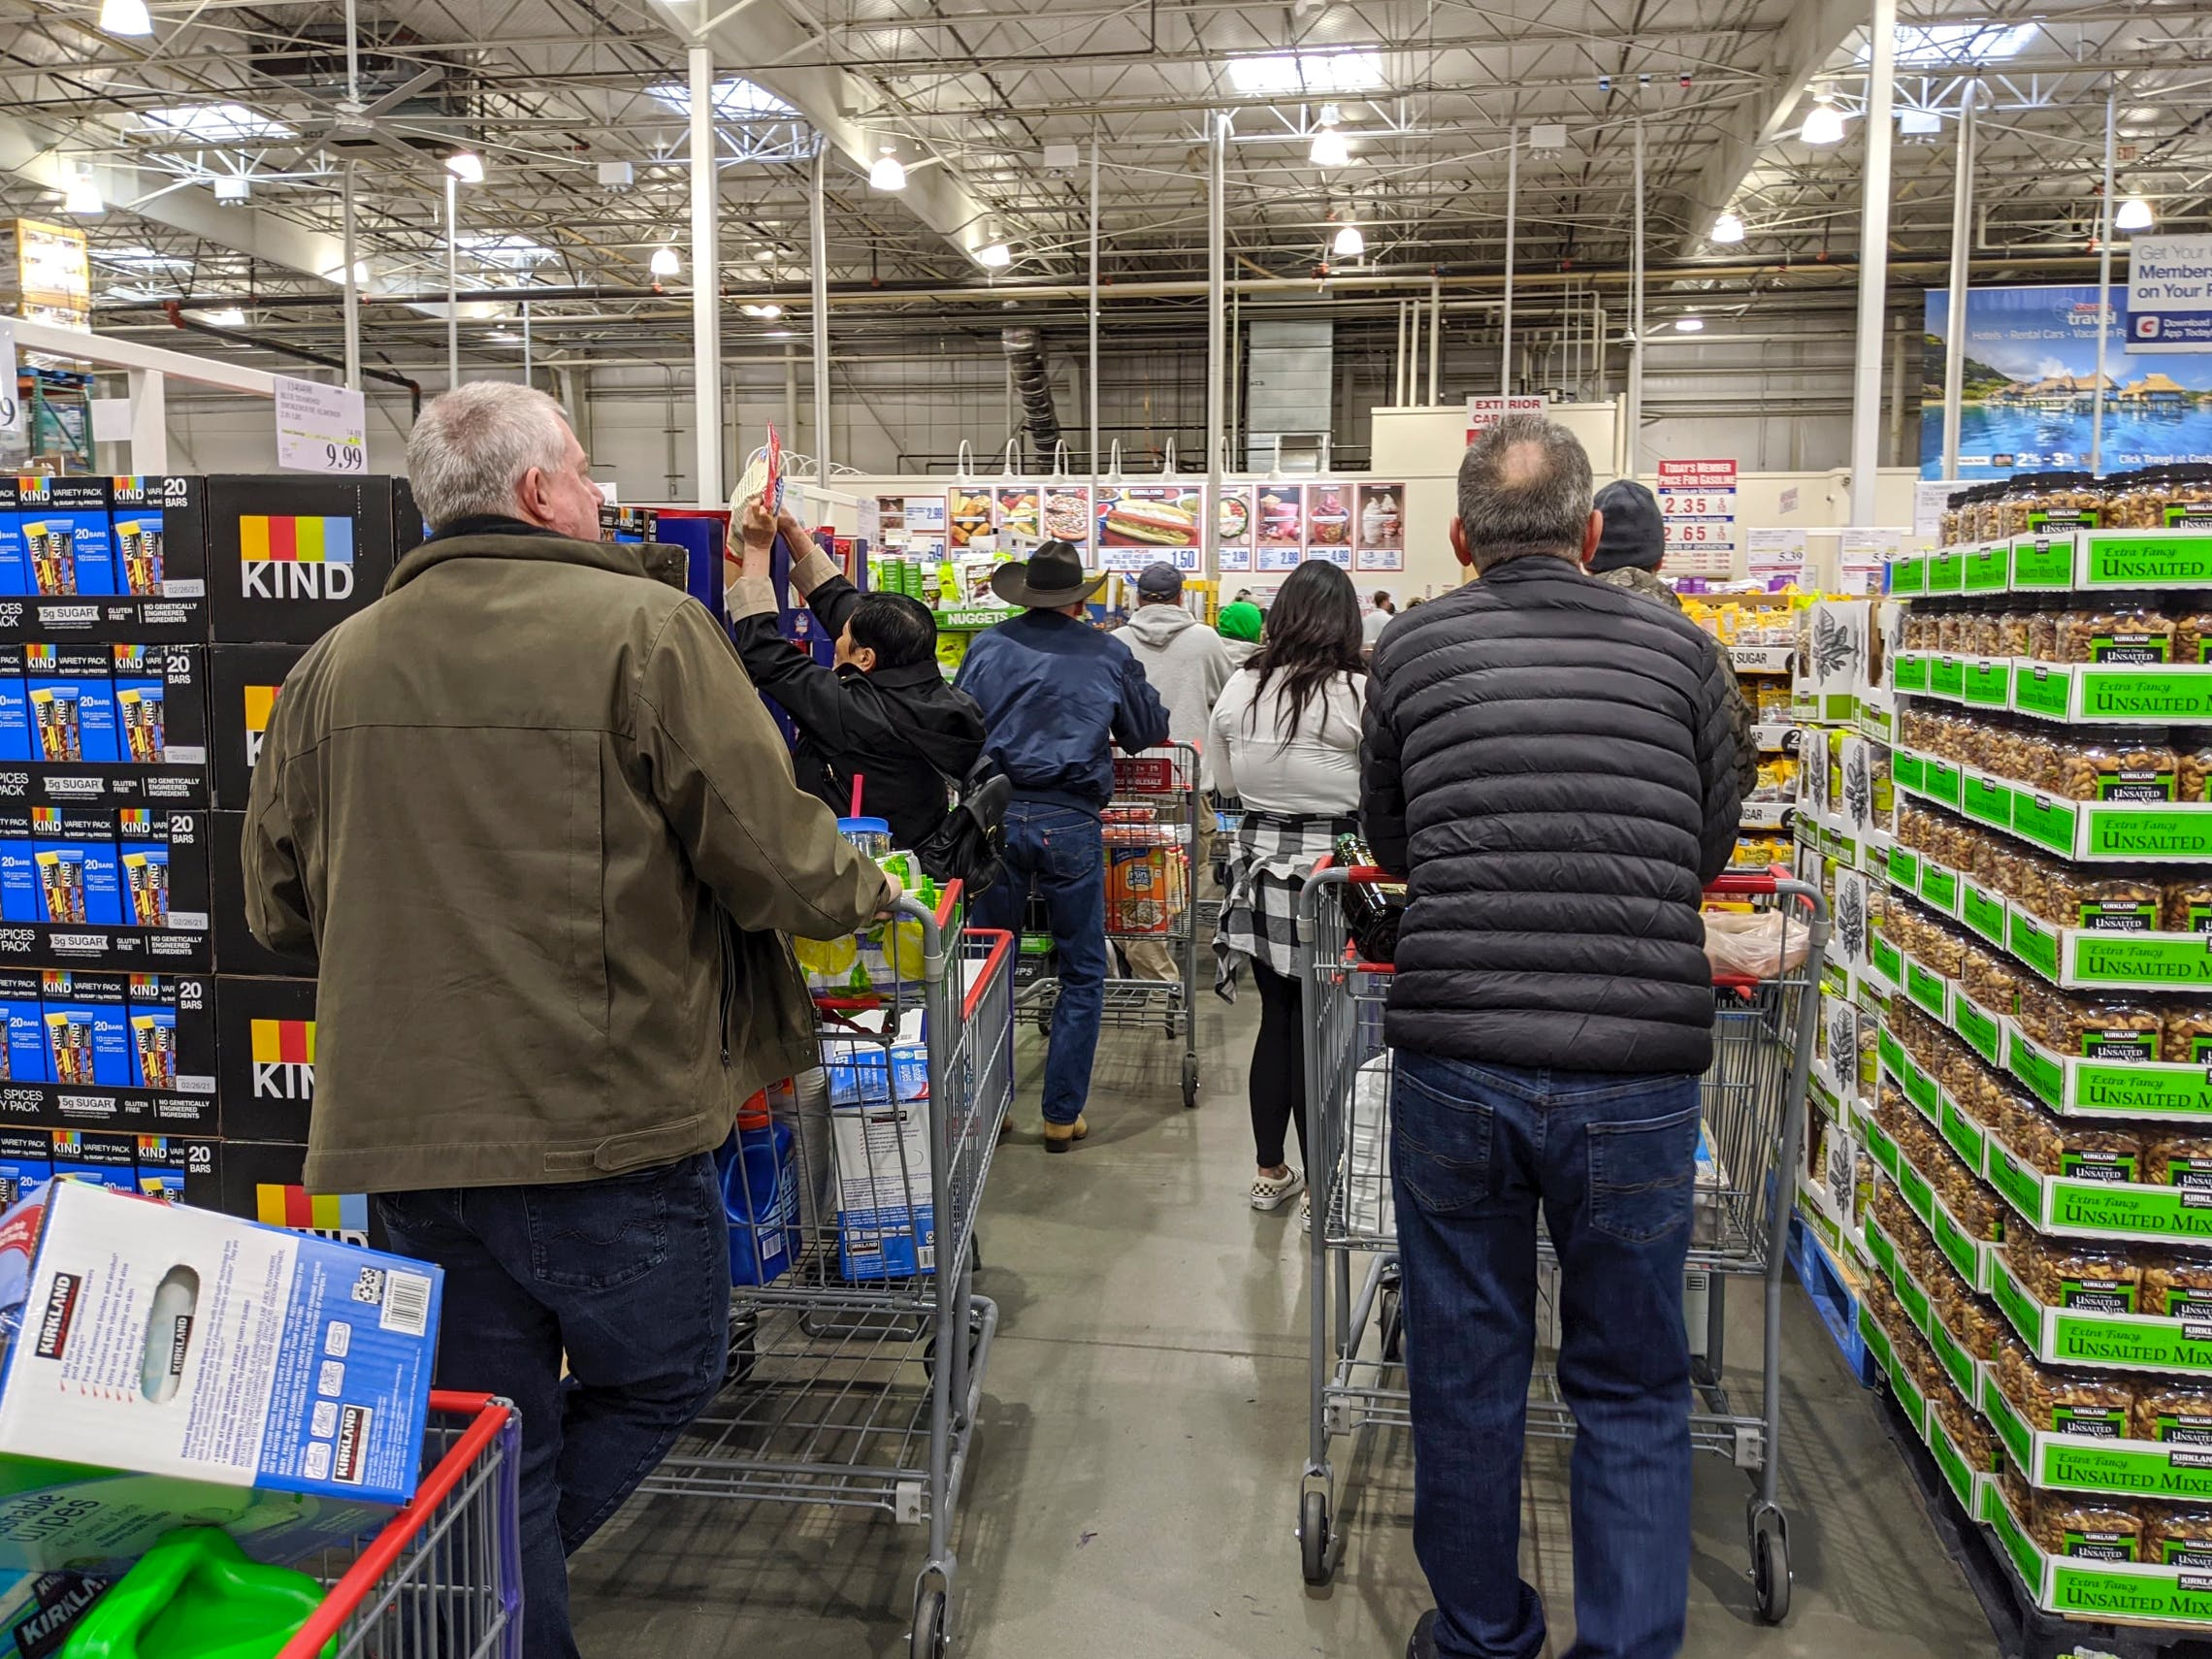 Best 16 Ways To Save Shop Smarter At Costco During Coronavirus The Krazy Coupon Lady